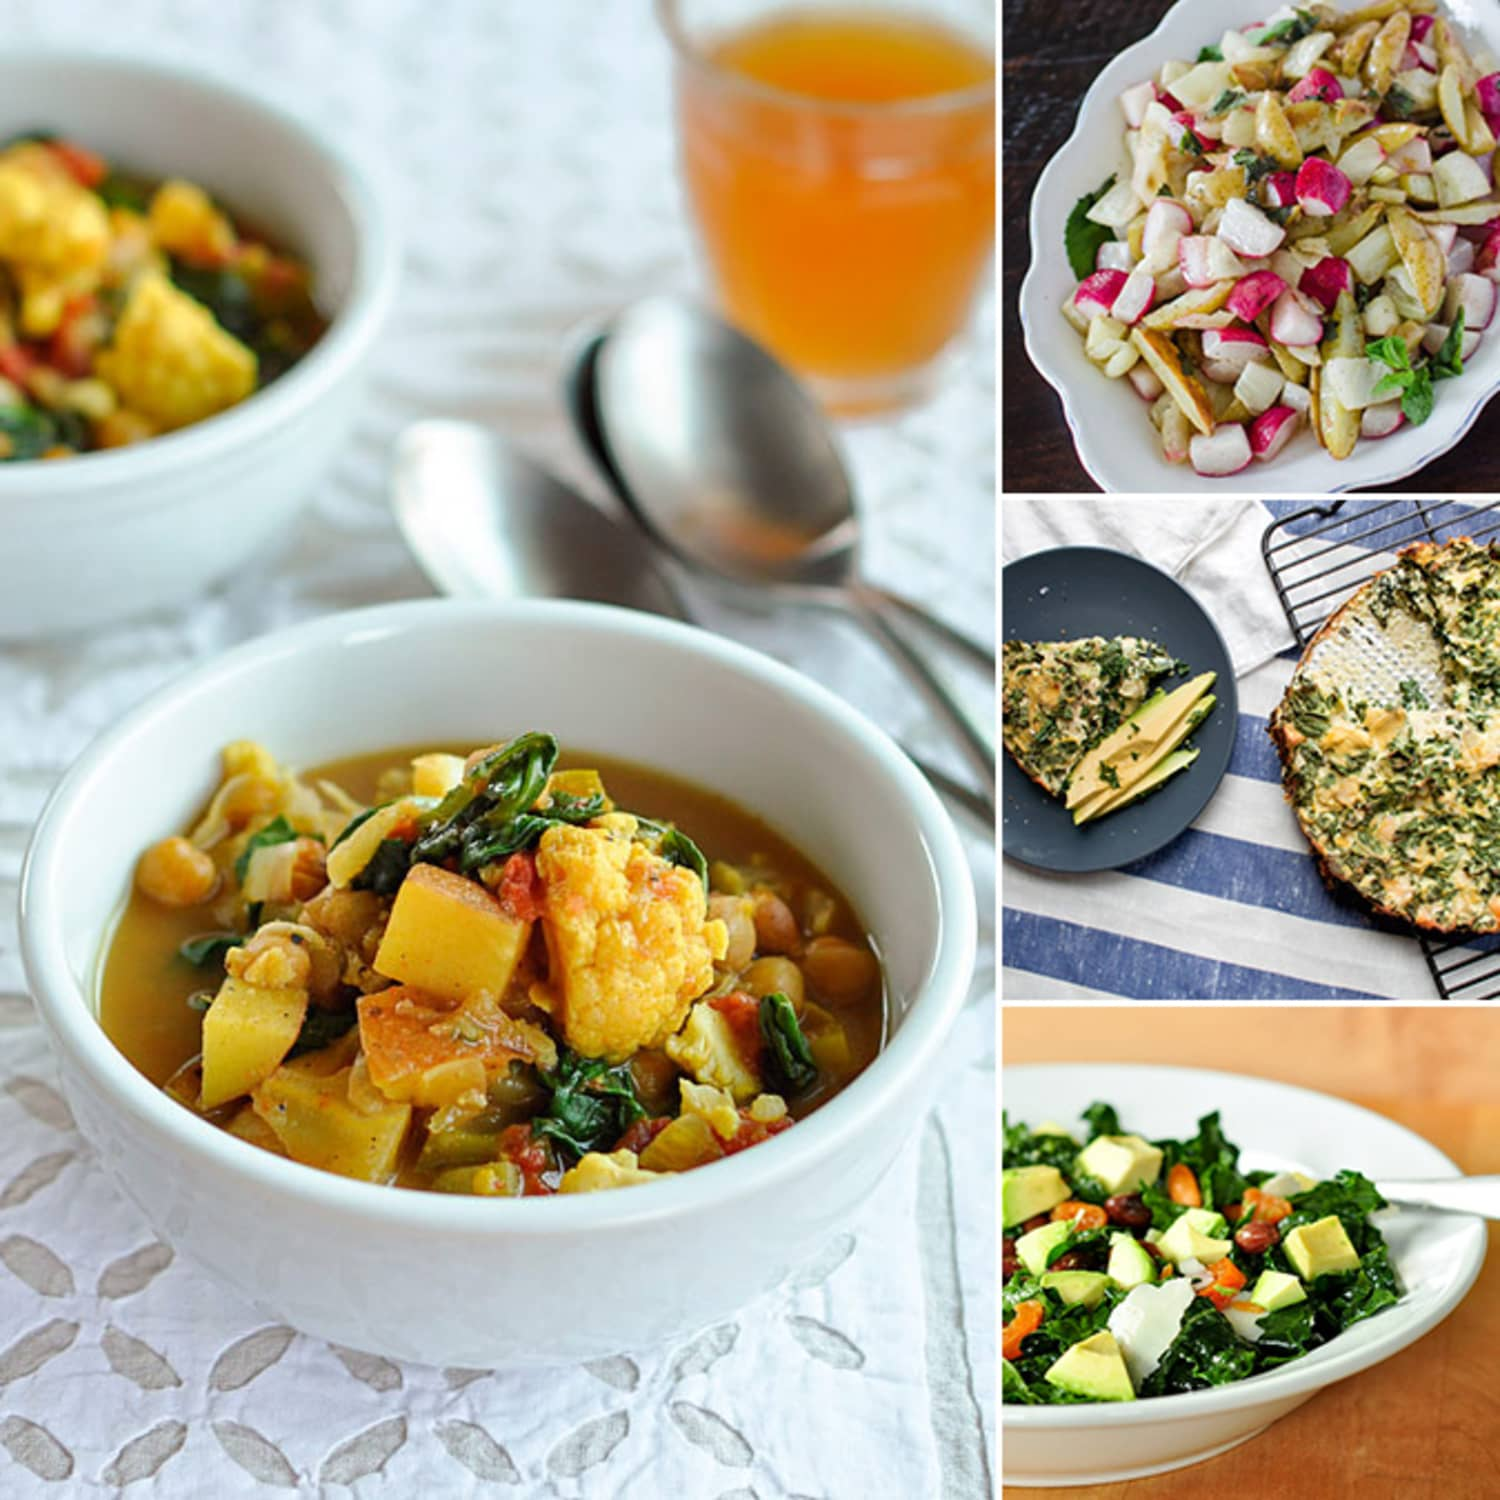 No Leftovers, Please: 5 Dinner Menus for the Week Before a Trip